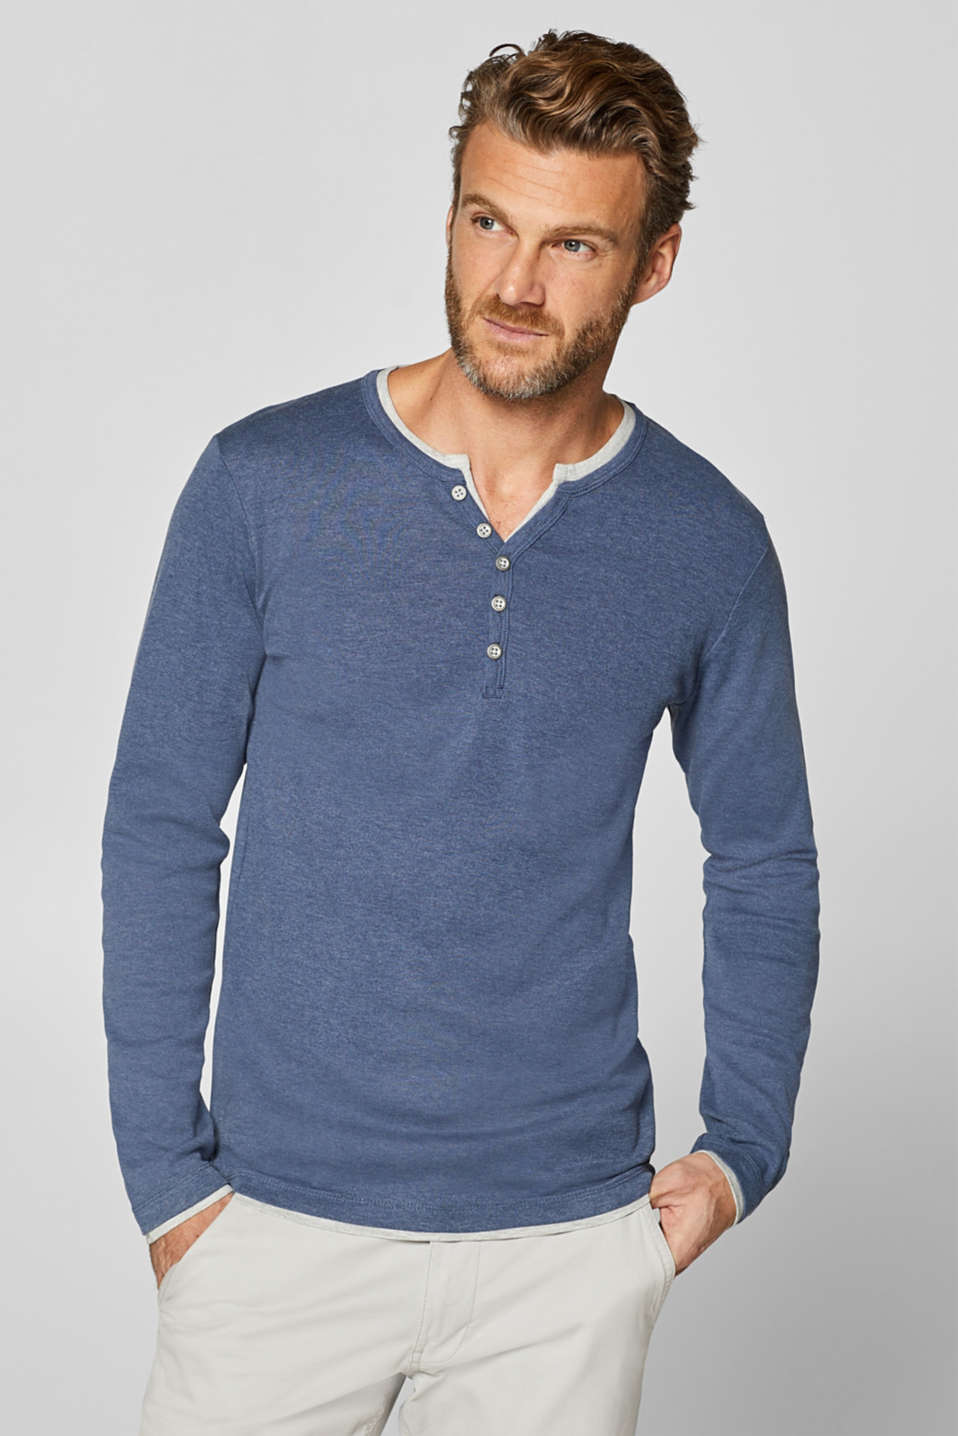 Esprit - Jersey long sleeve top with a Henley neckline